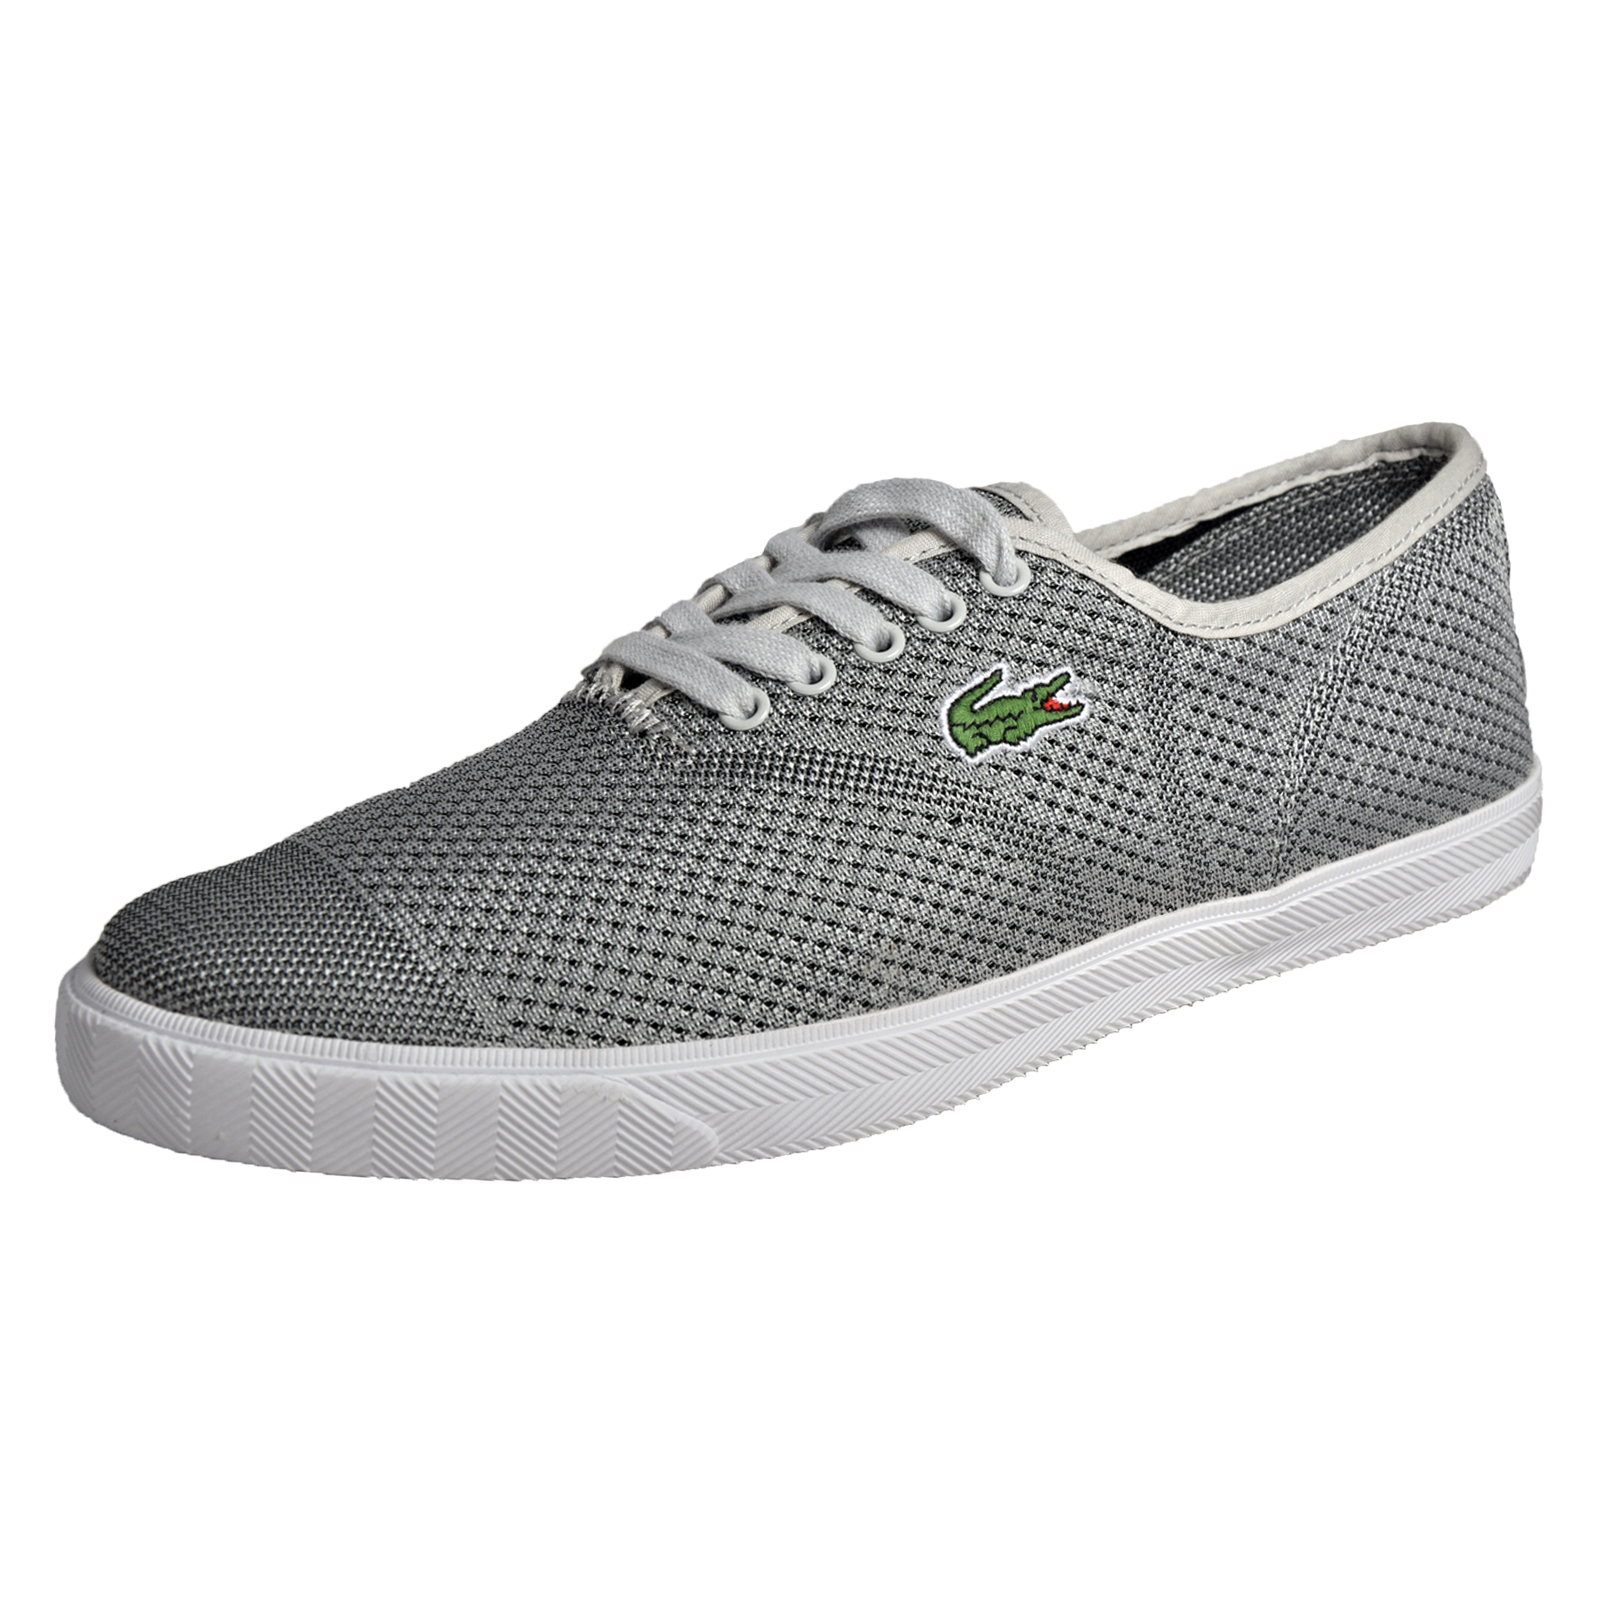 bc9c024b1d66 Details about Lacoste Rene II Mesh Pique Mens Designer Classic Casual  Plimsoll Trainers Silver